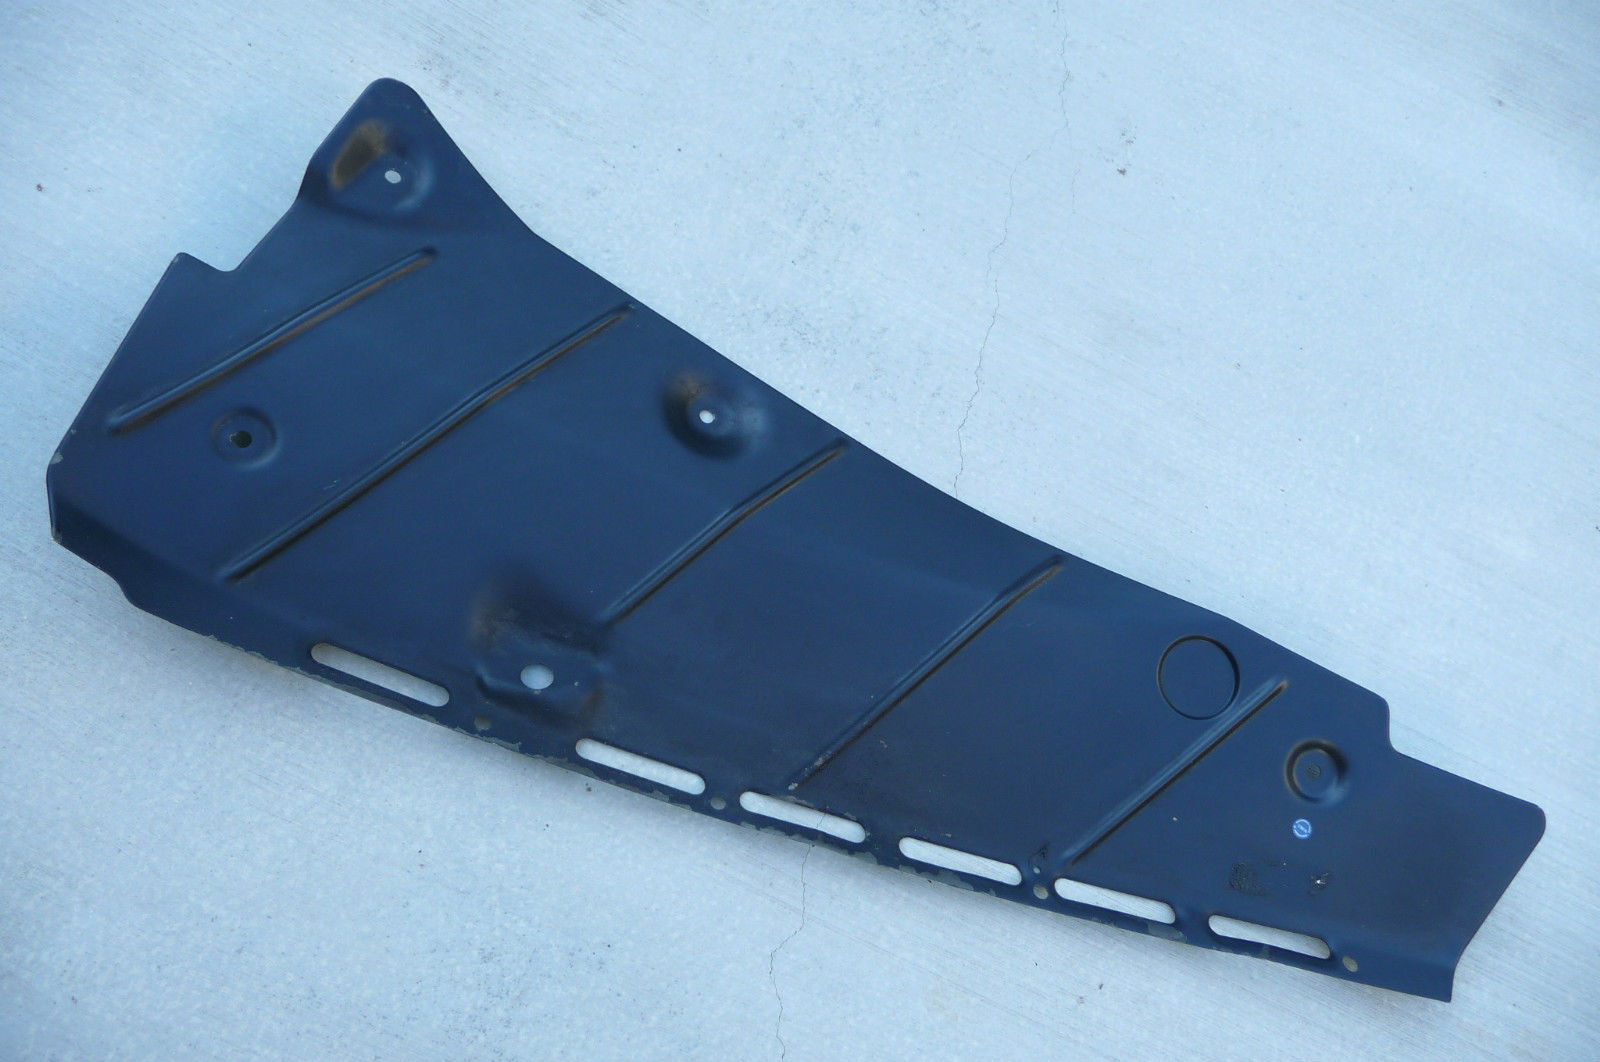 Ferrari 360 Challenge Modena Right RH Passenger Side Panel 65889600 OEM OE - Used Auto Parts Store | LA Global Parts